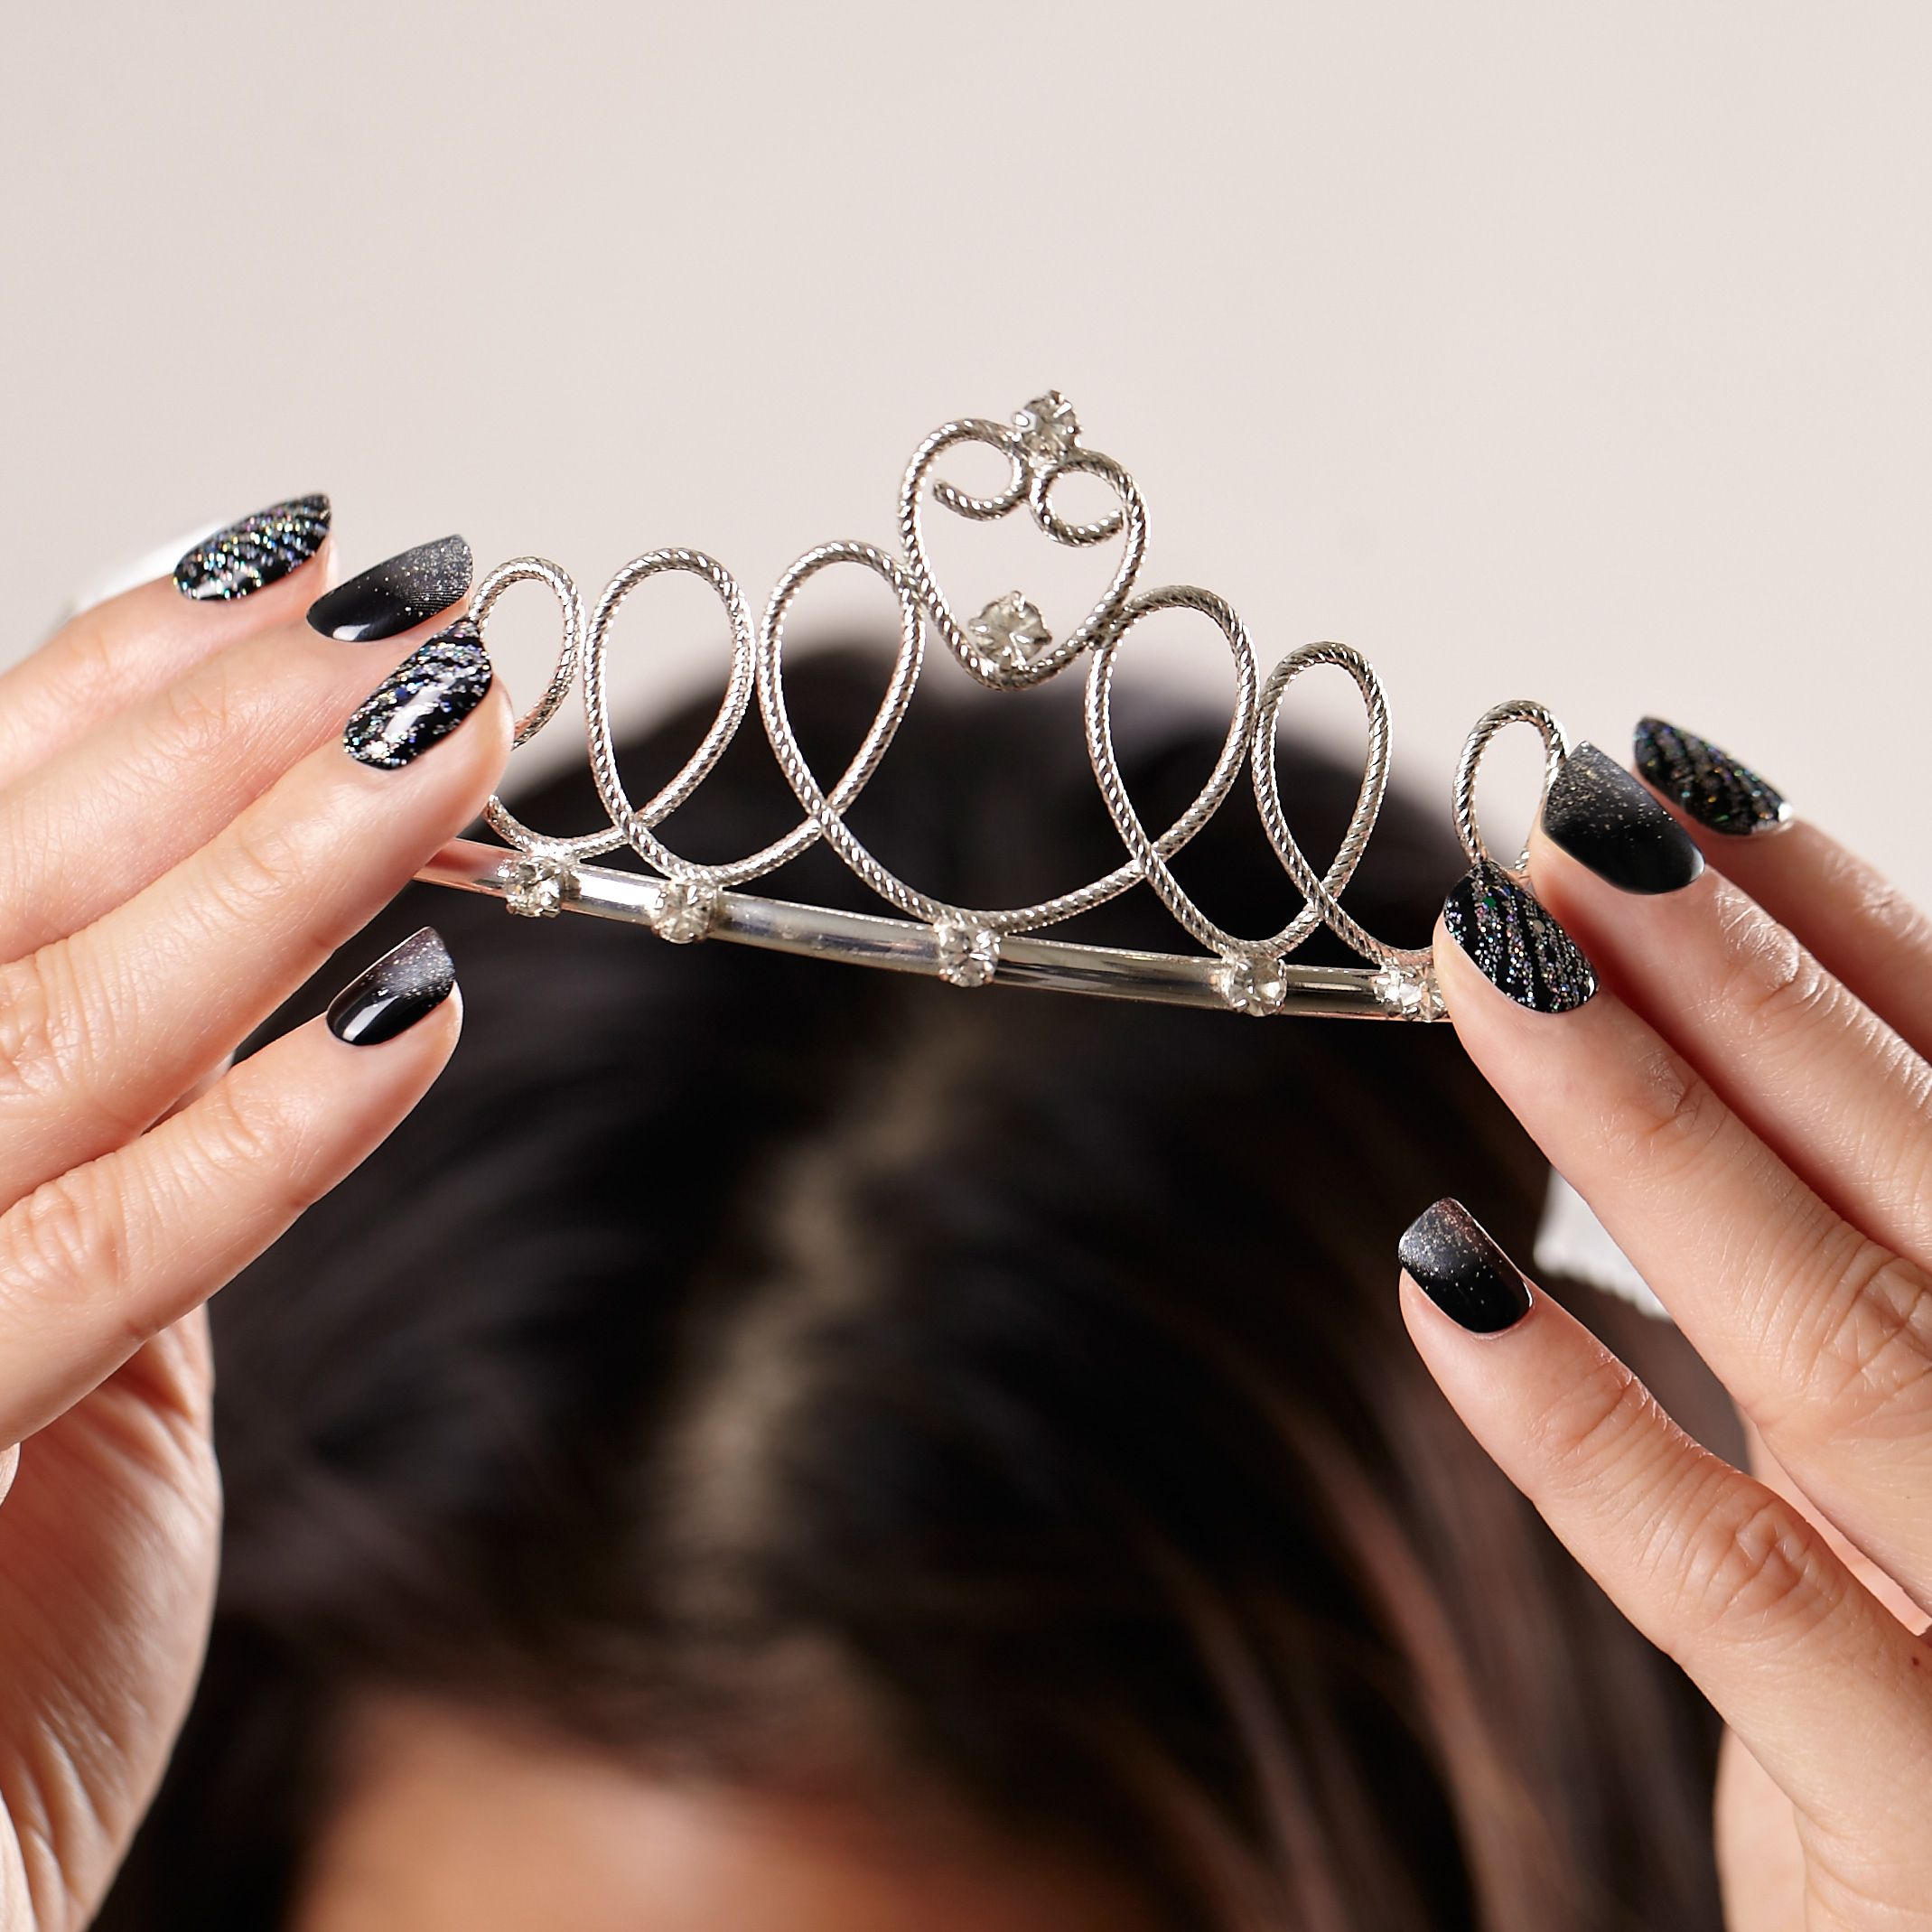 Impress press on manicure nails my style pinterest - Put On A Tiara And Party On With These Impress Accent Nails In Flash Mob